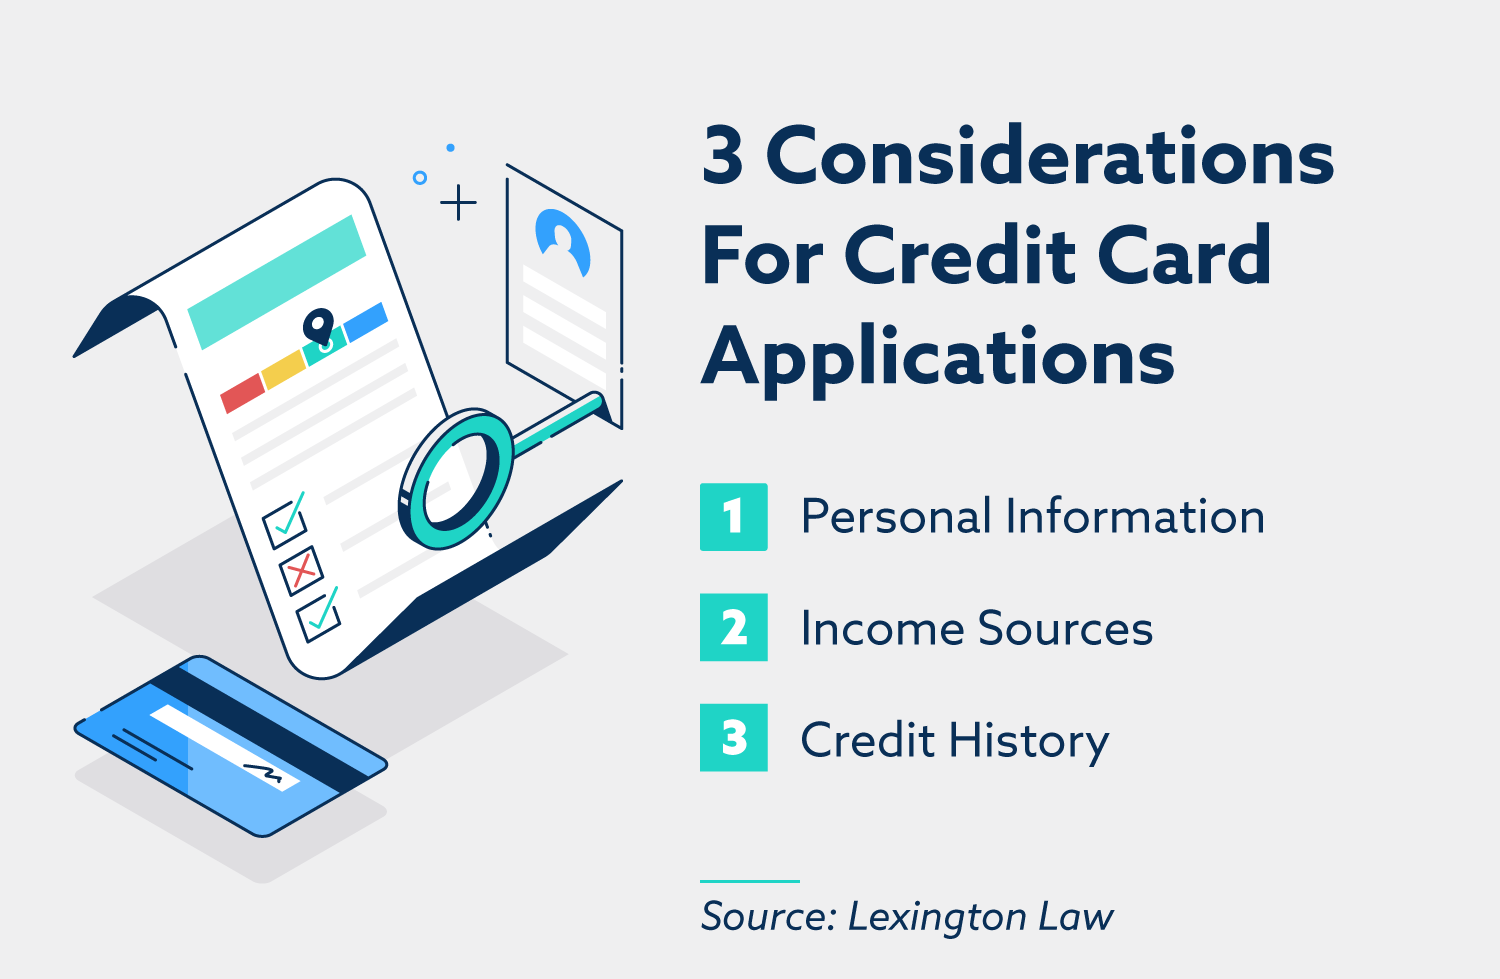 3 considerations for credit card applications